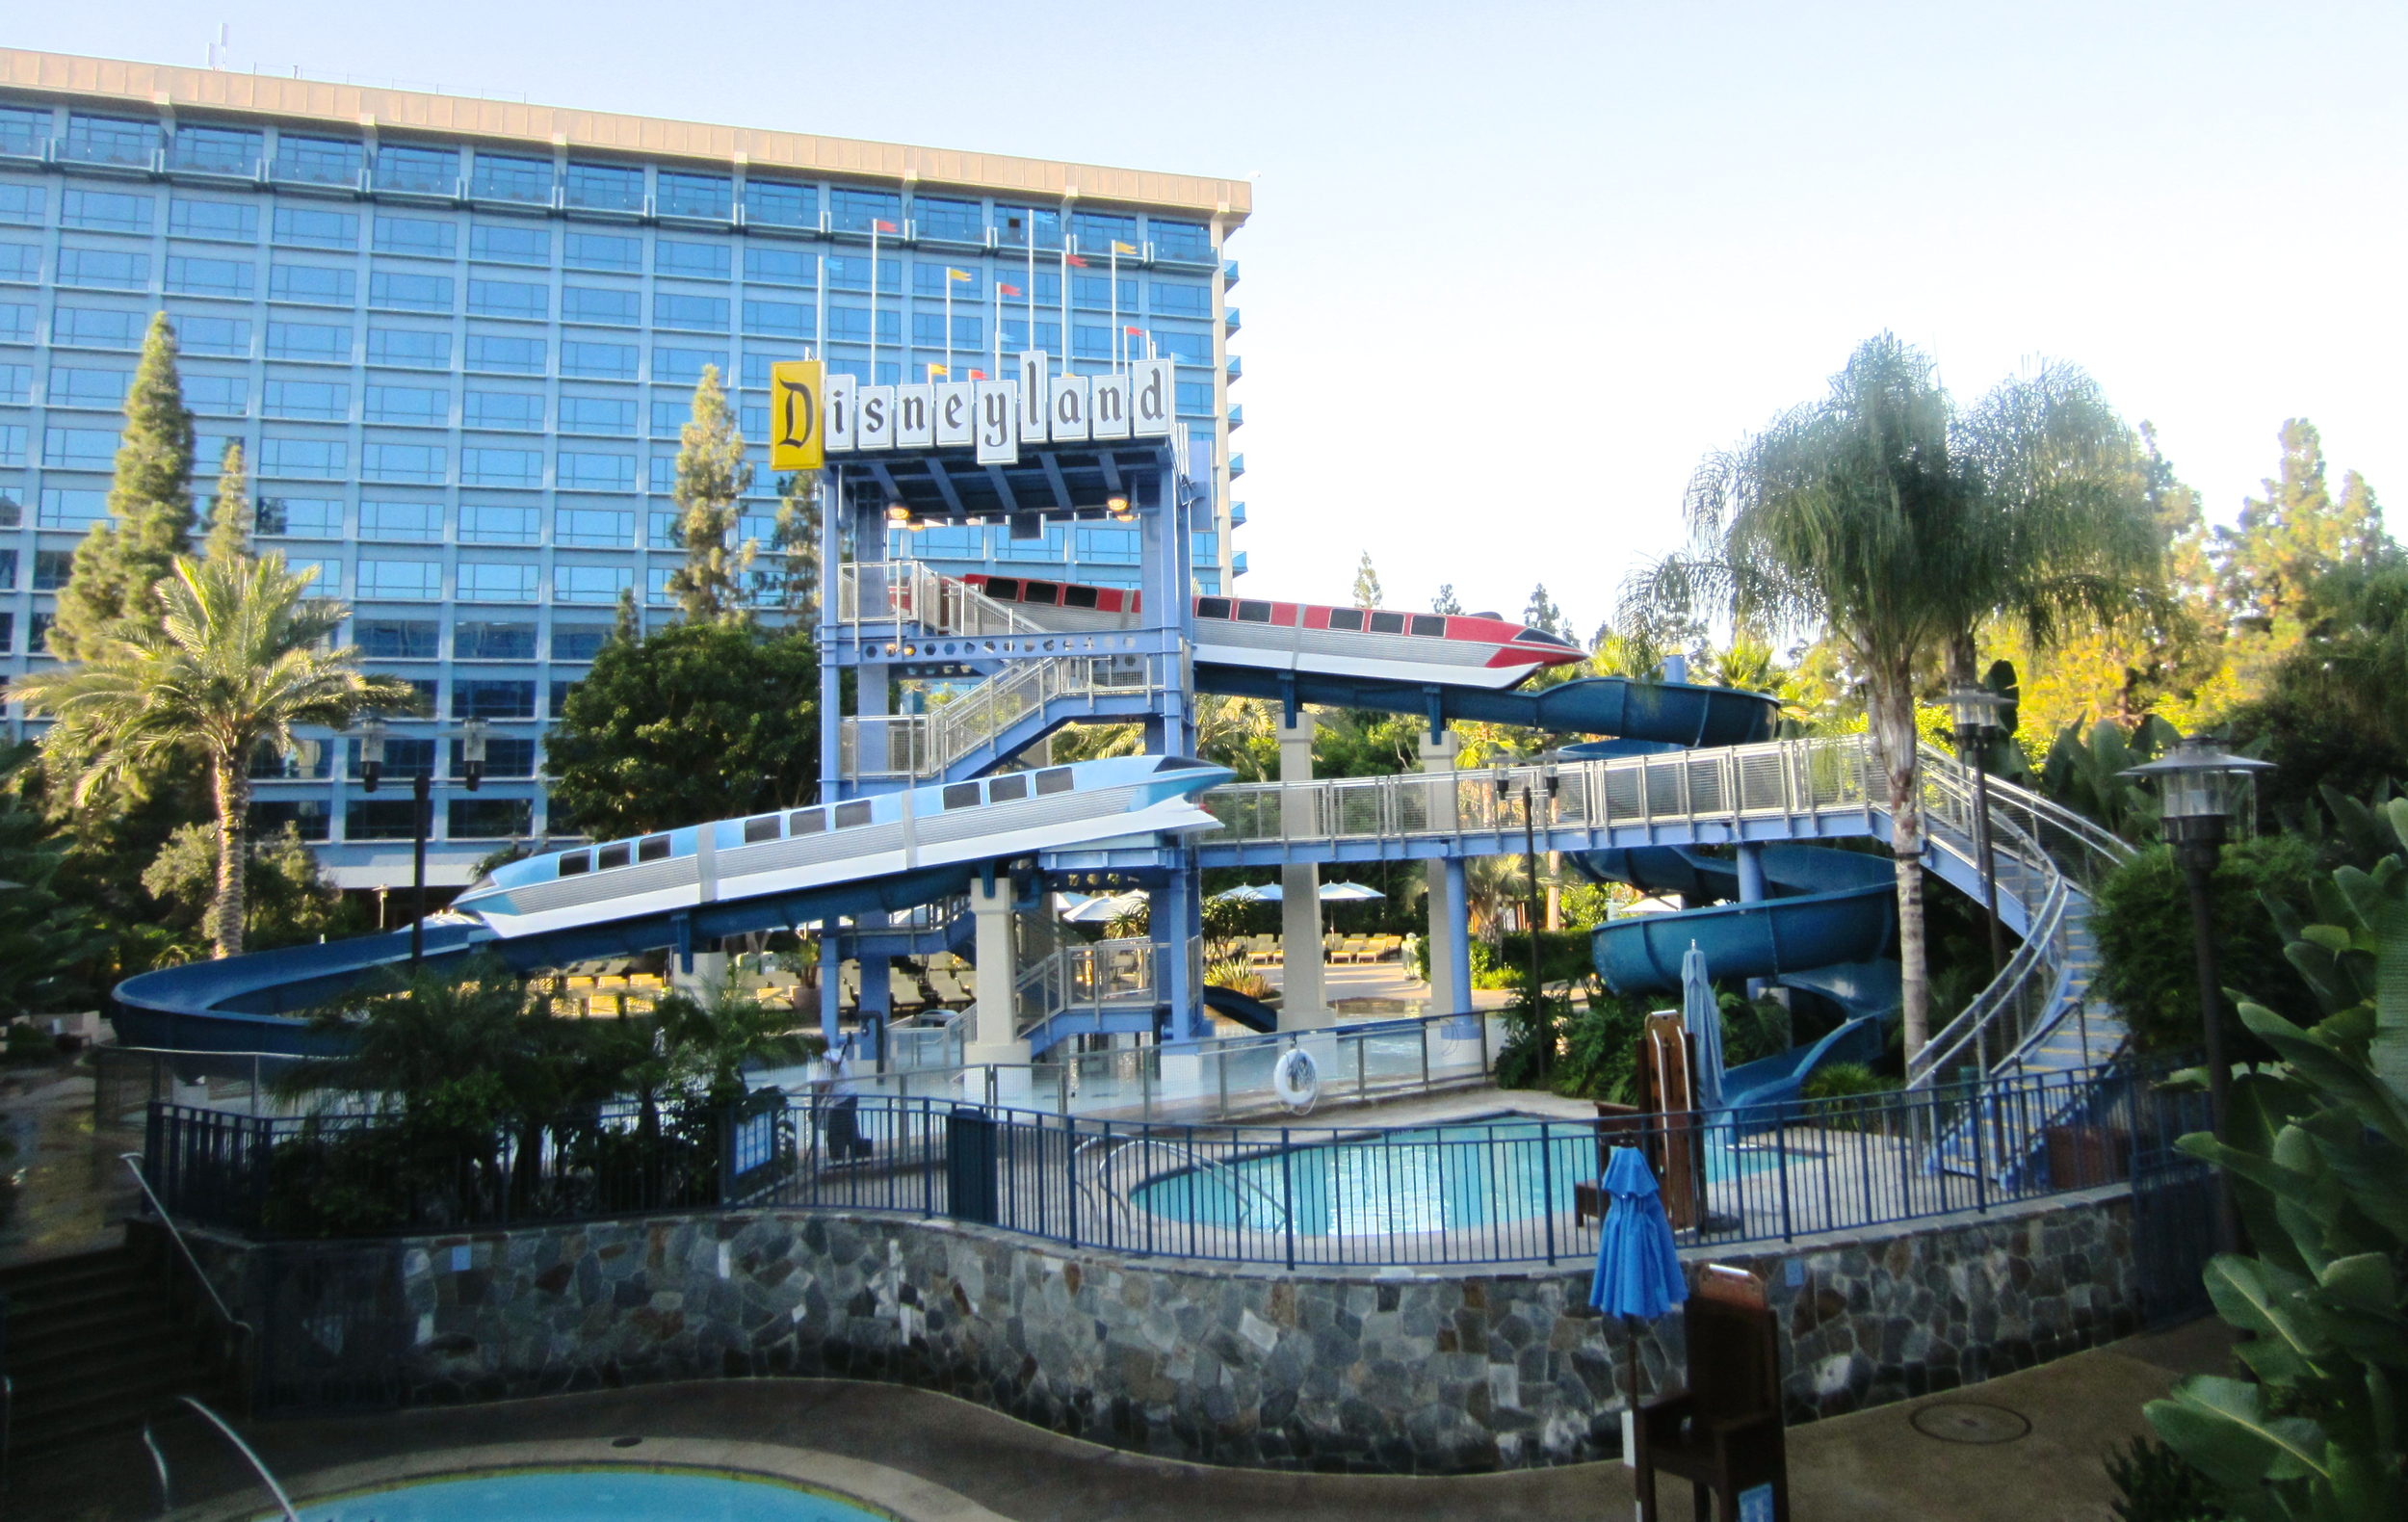 disneyland-hotel-monorail-water-slide.jpg